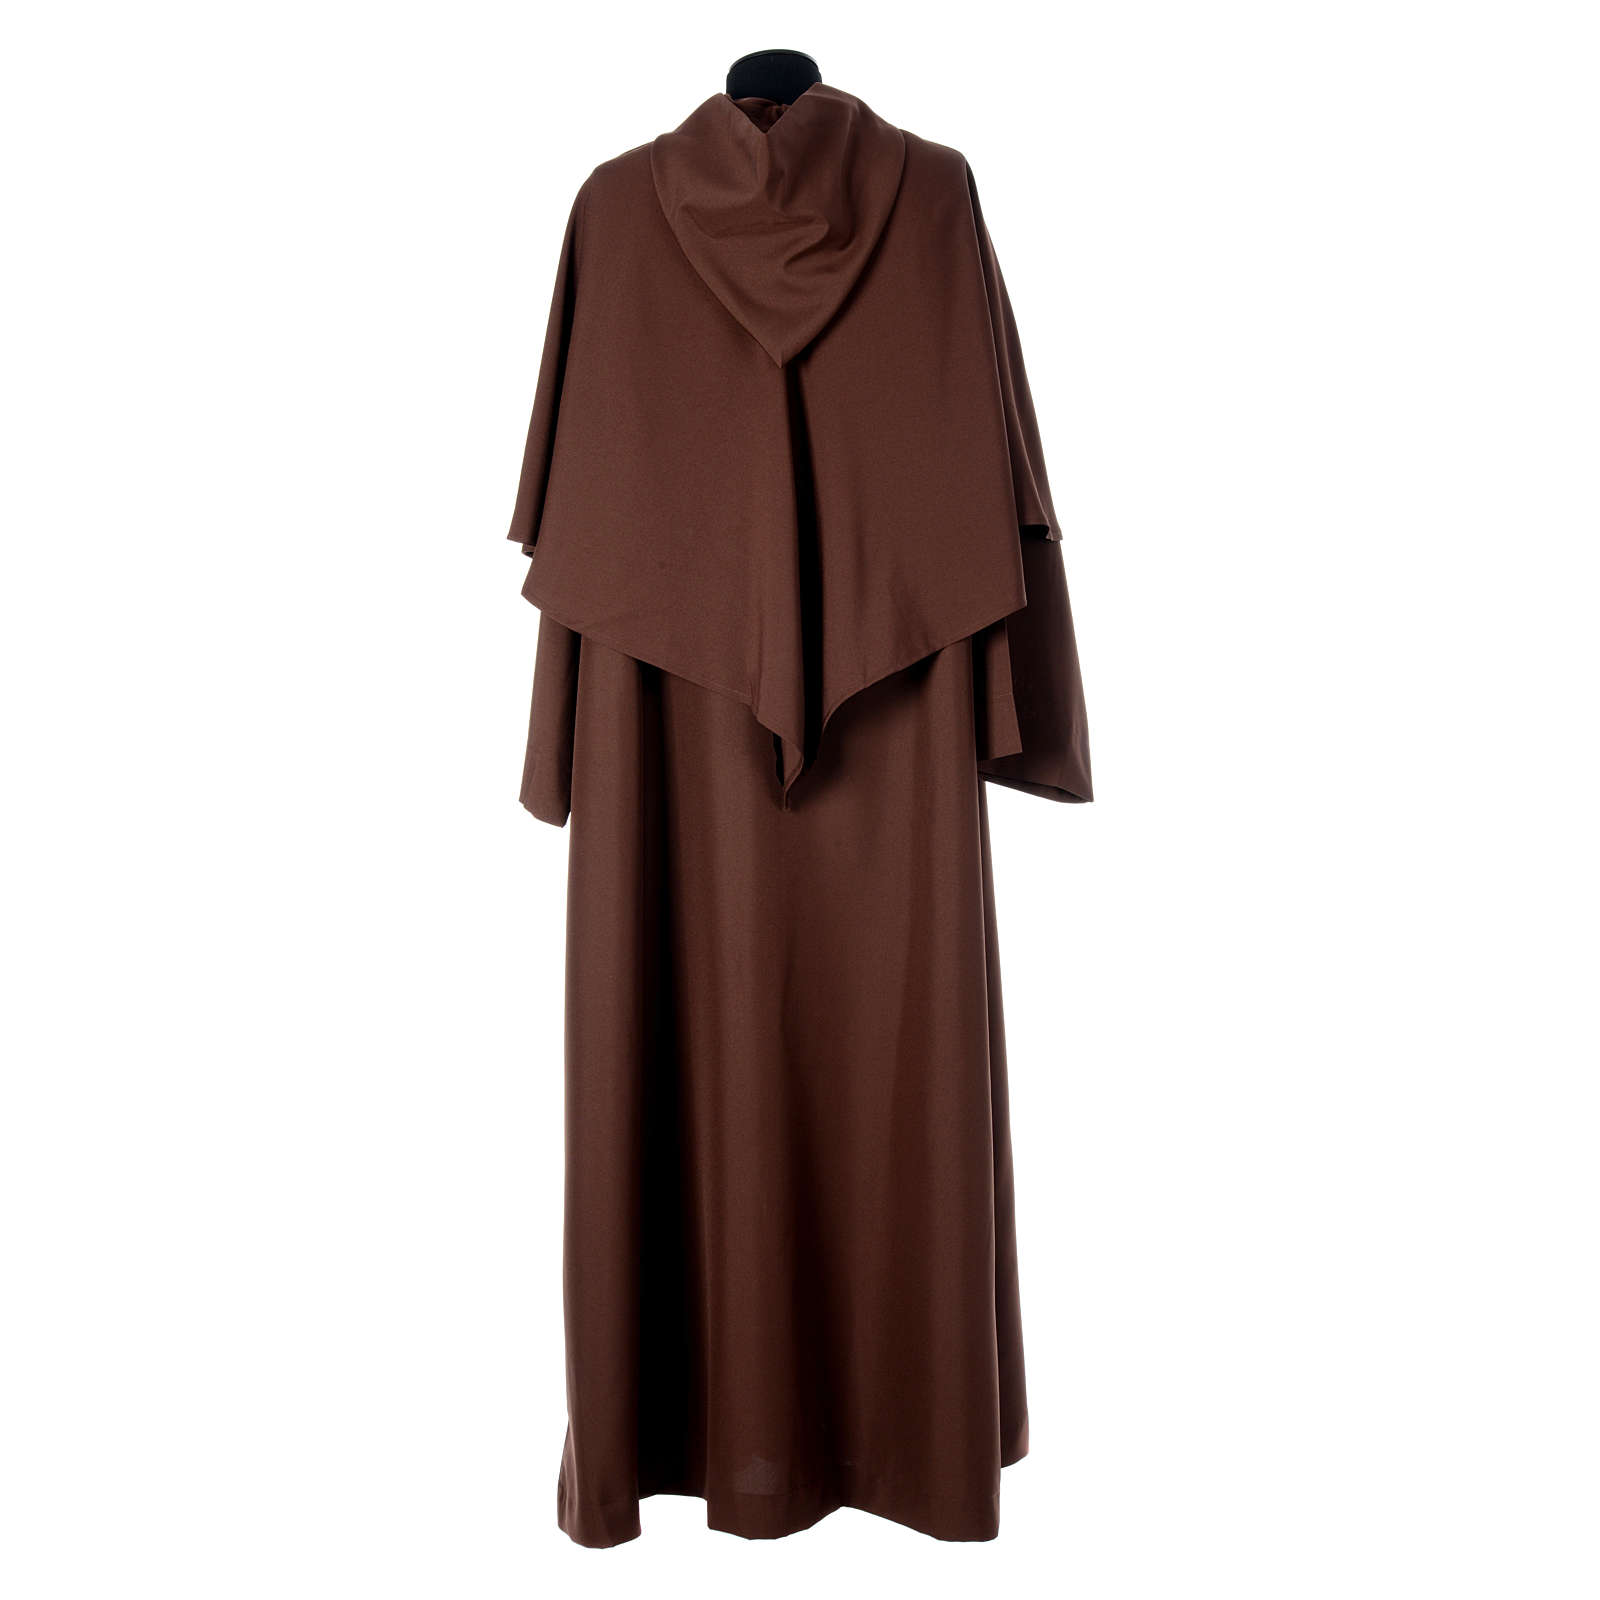 Franciscan brown tunic in polyester 4